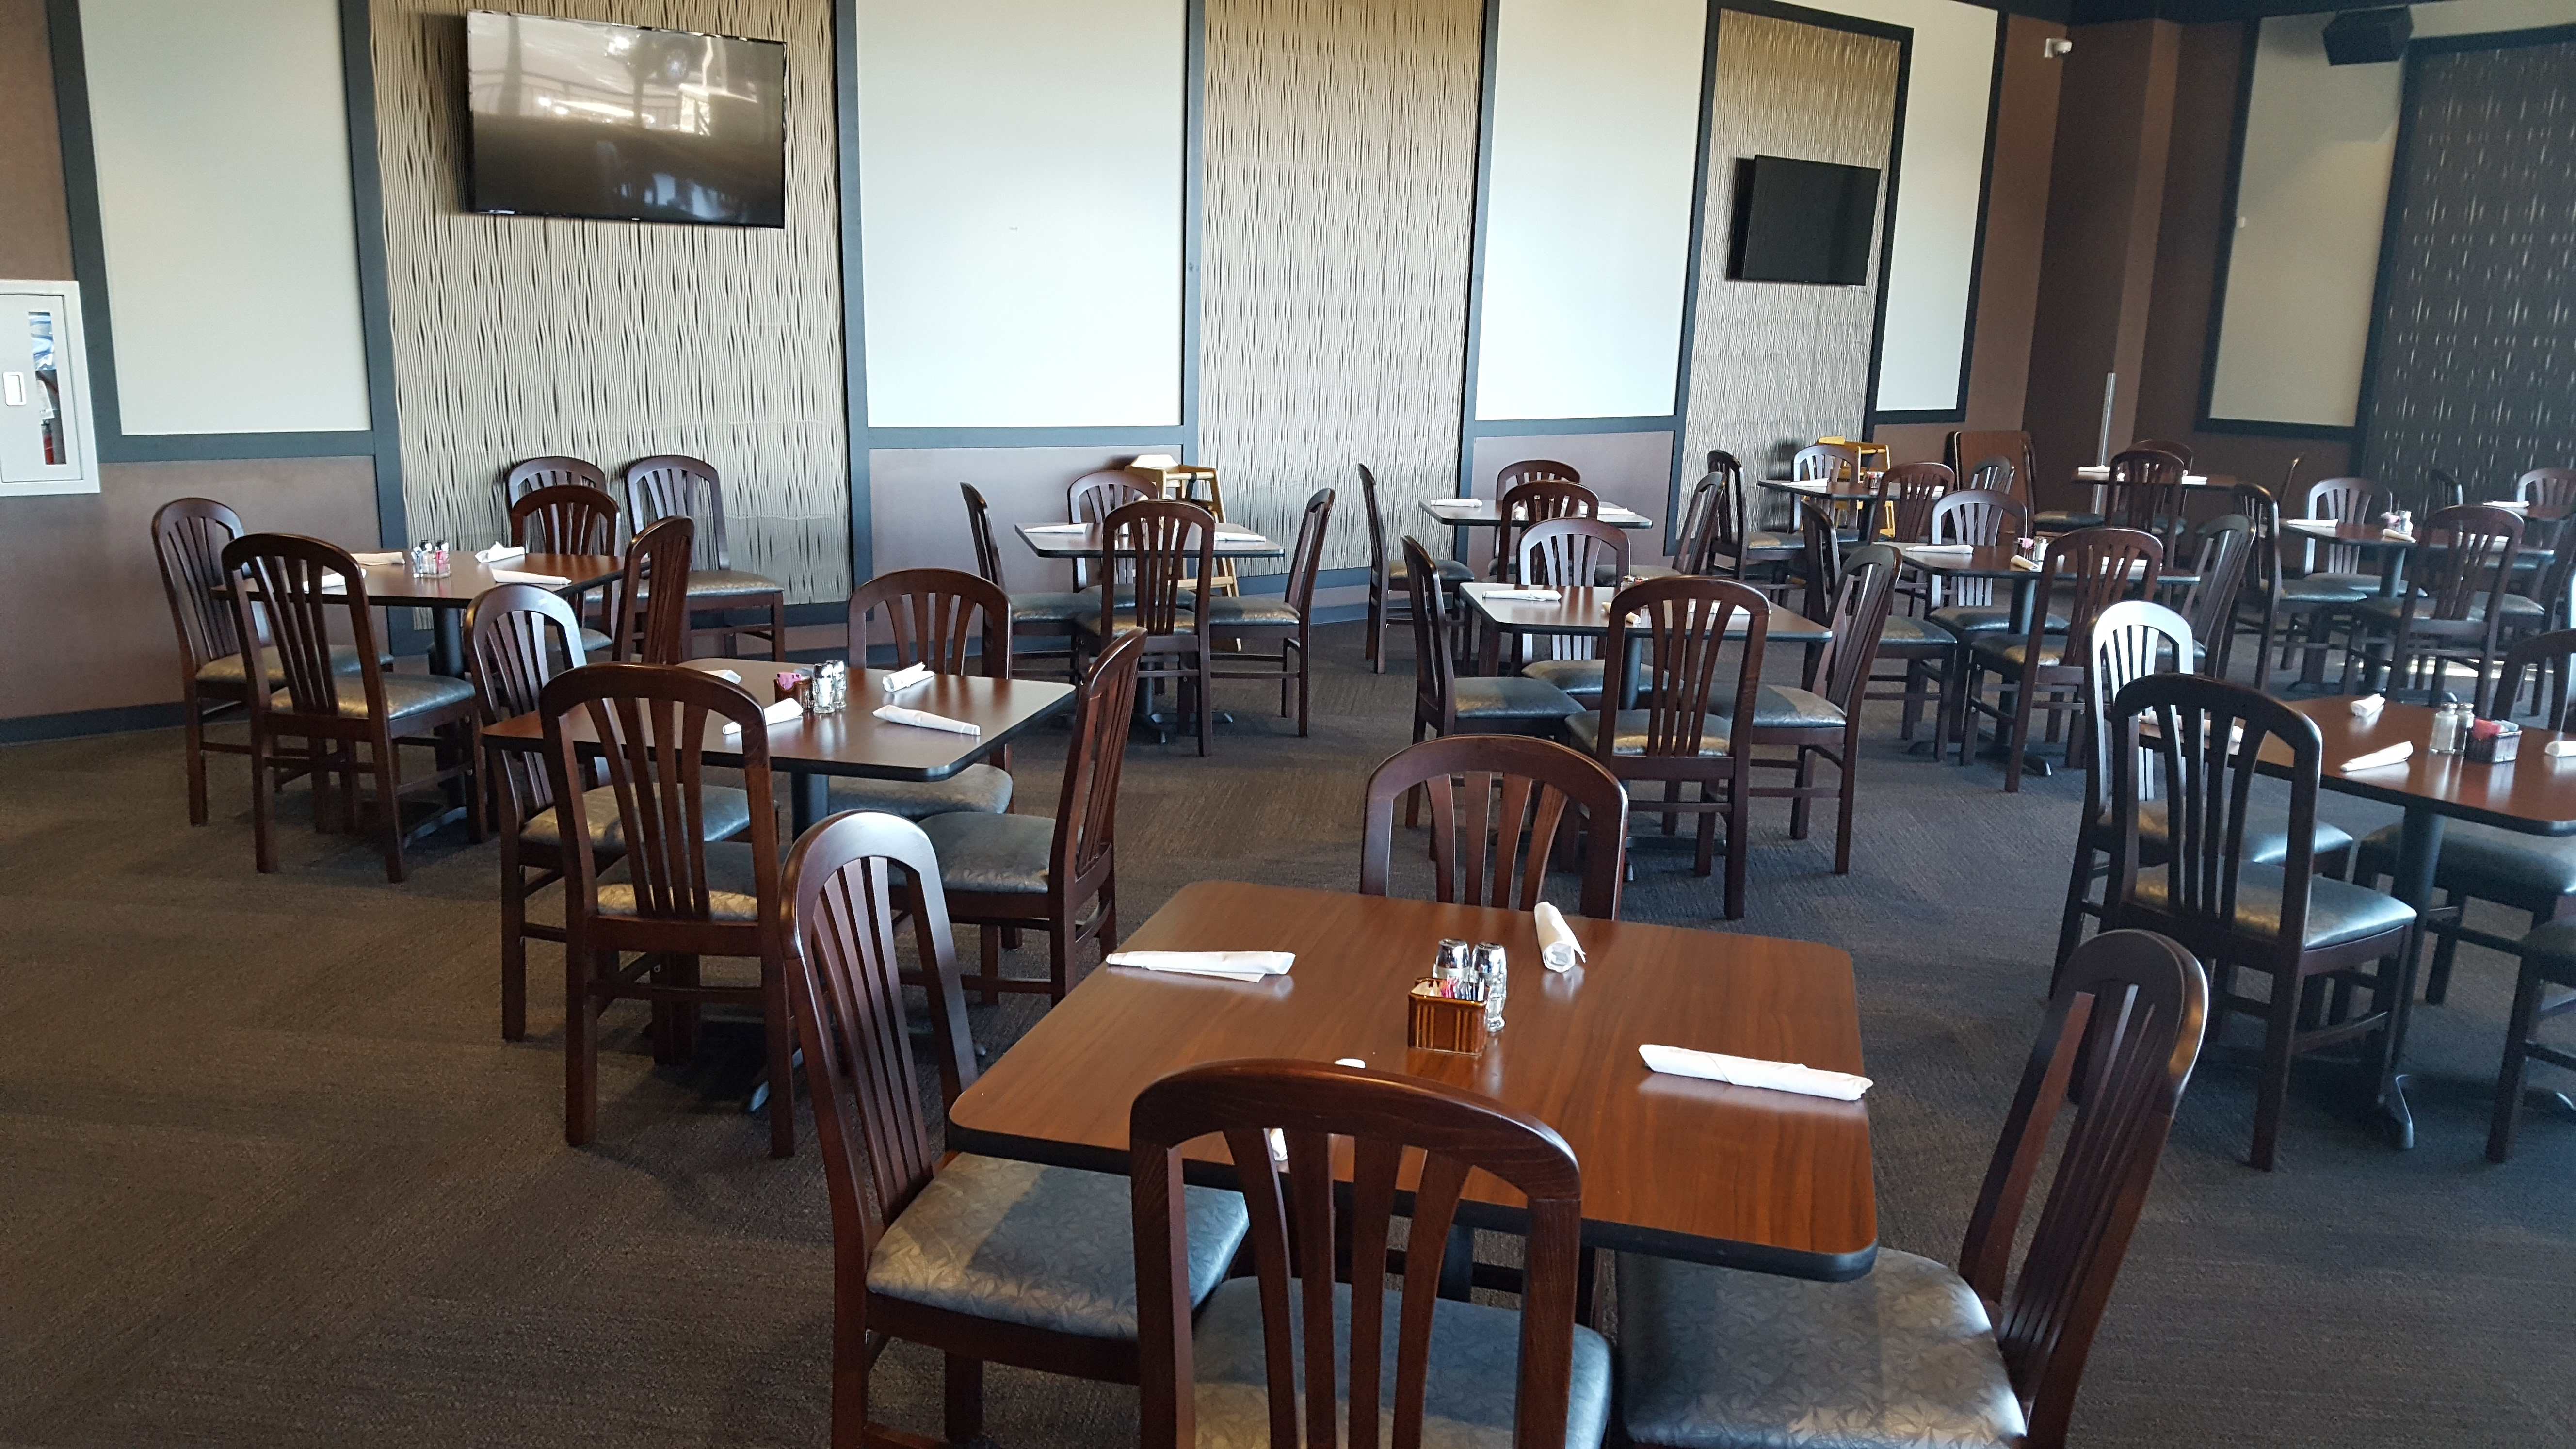 dining room service articles. you can choose from indoor dining in a gorgeous room or outdoor space as well. there is also full-service bar which placed between the service articles